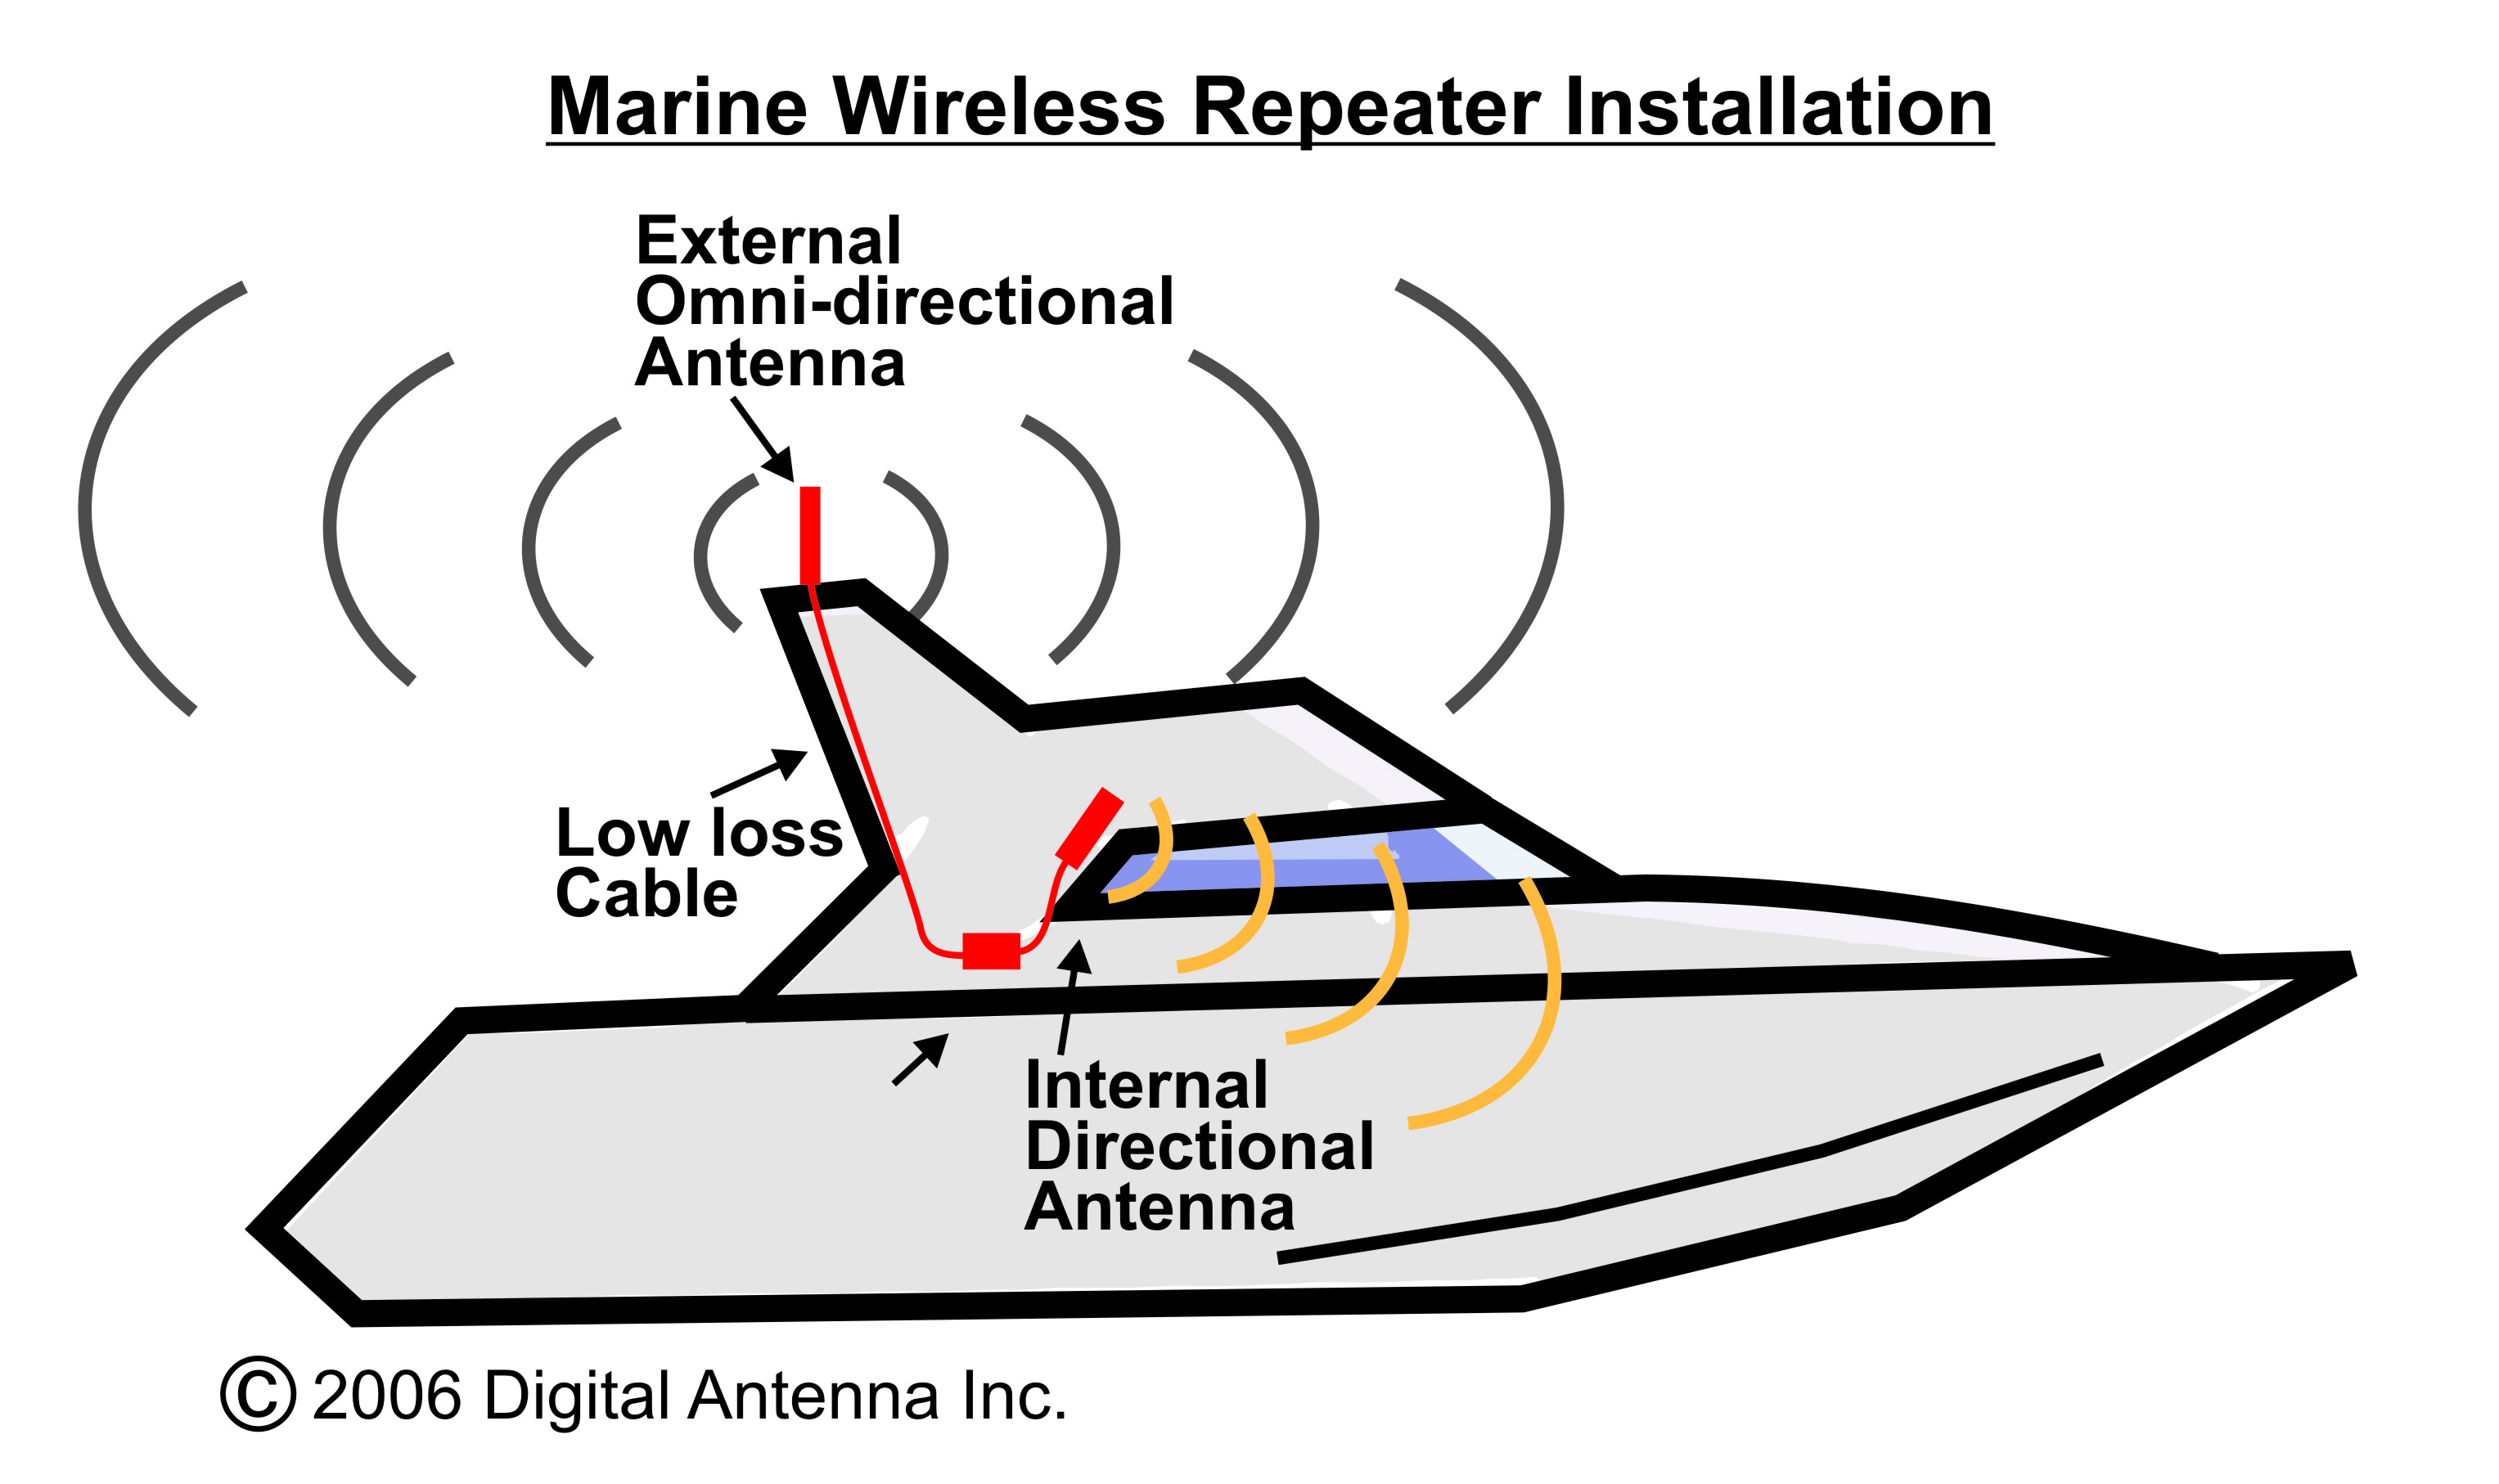 boat diagram with marine repeater